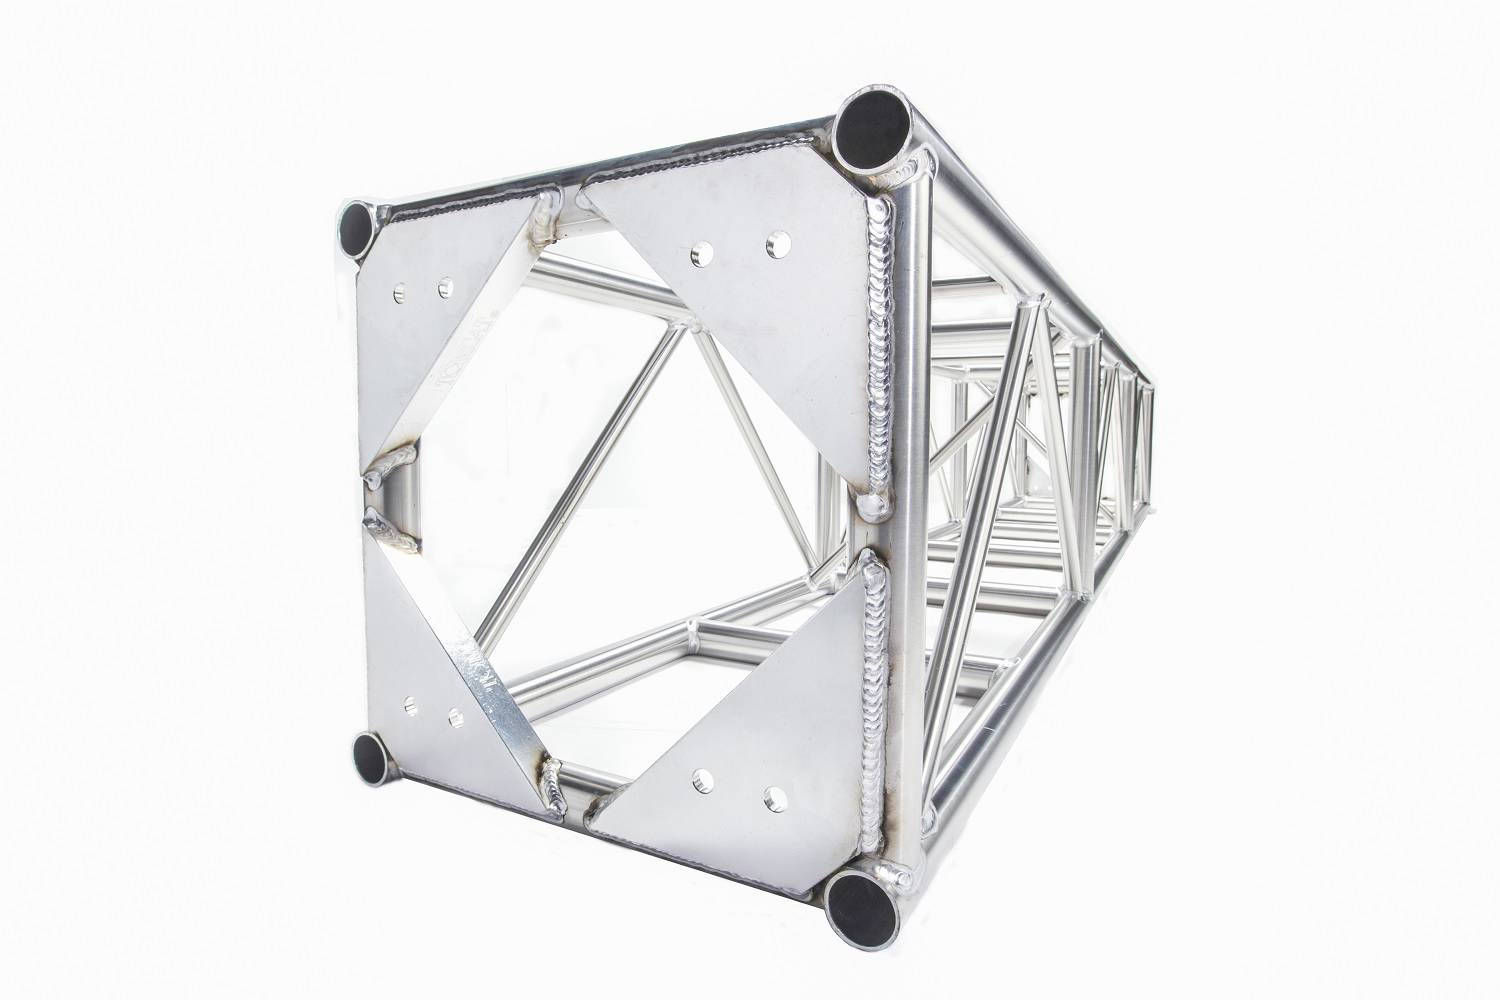 Medium duty truss 20.5 x 20.5 plated